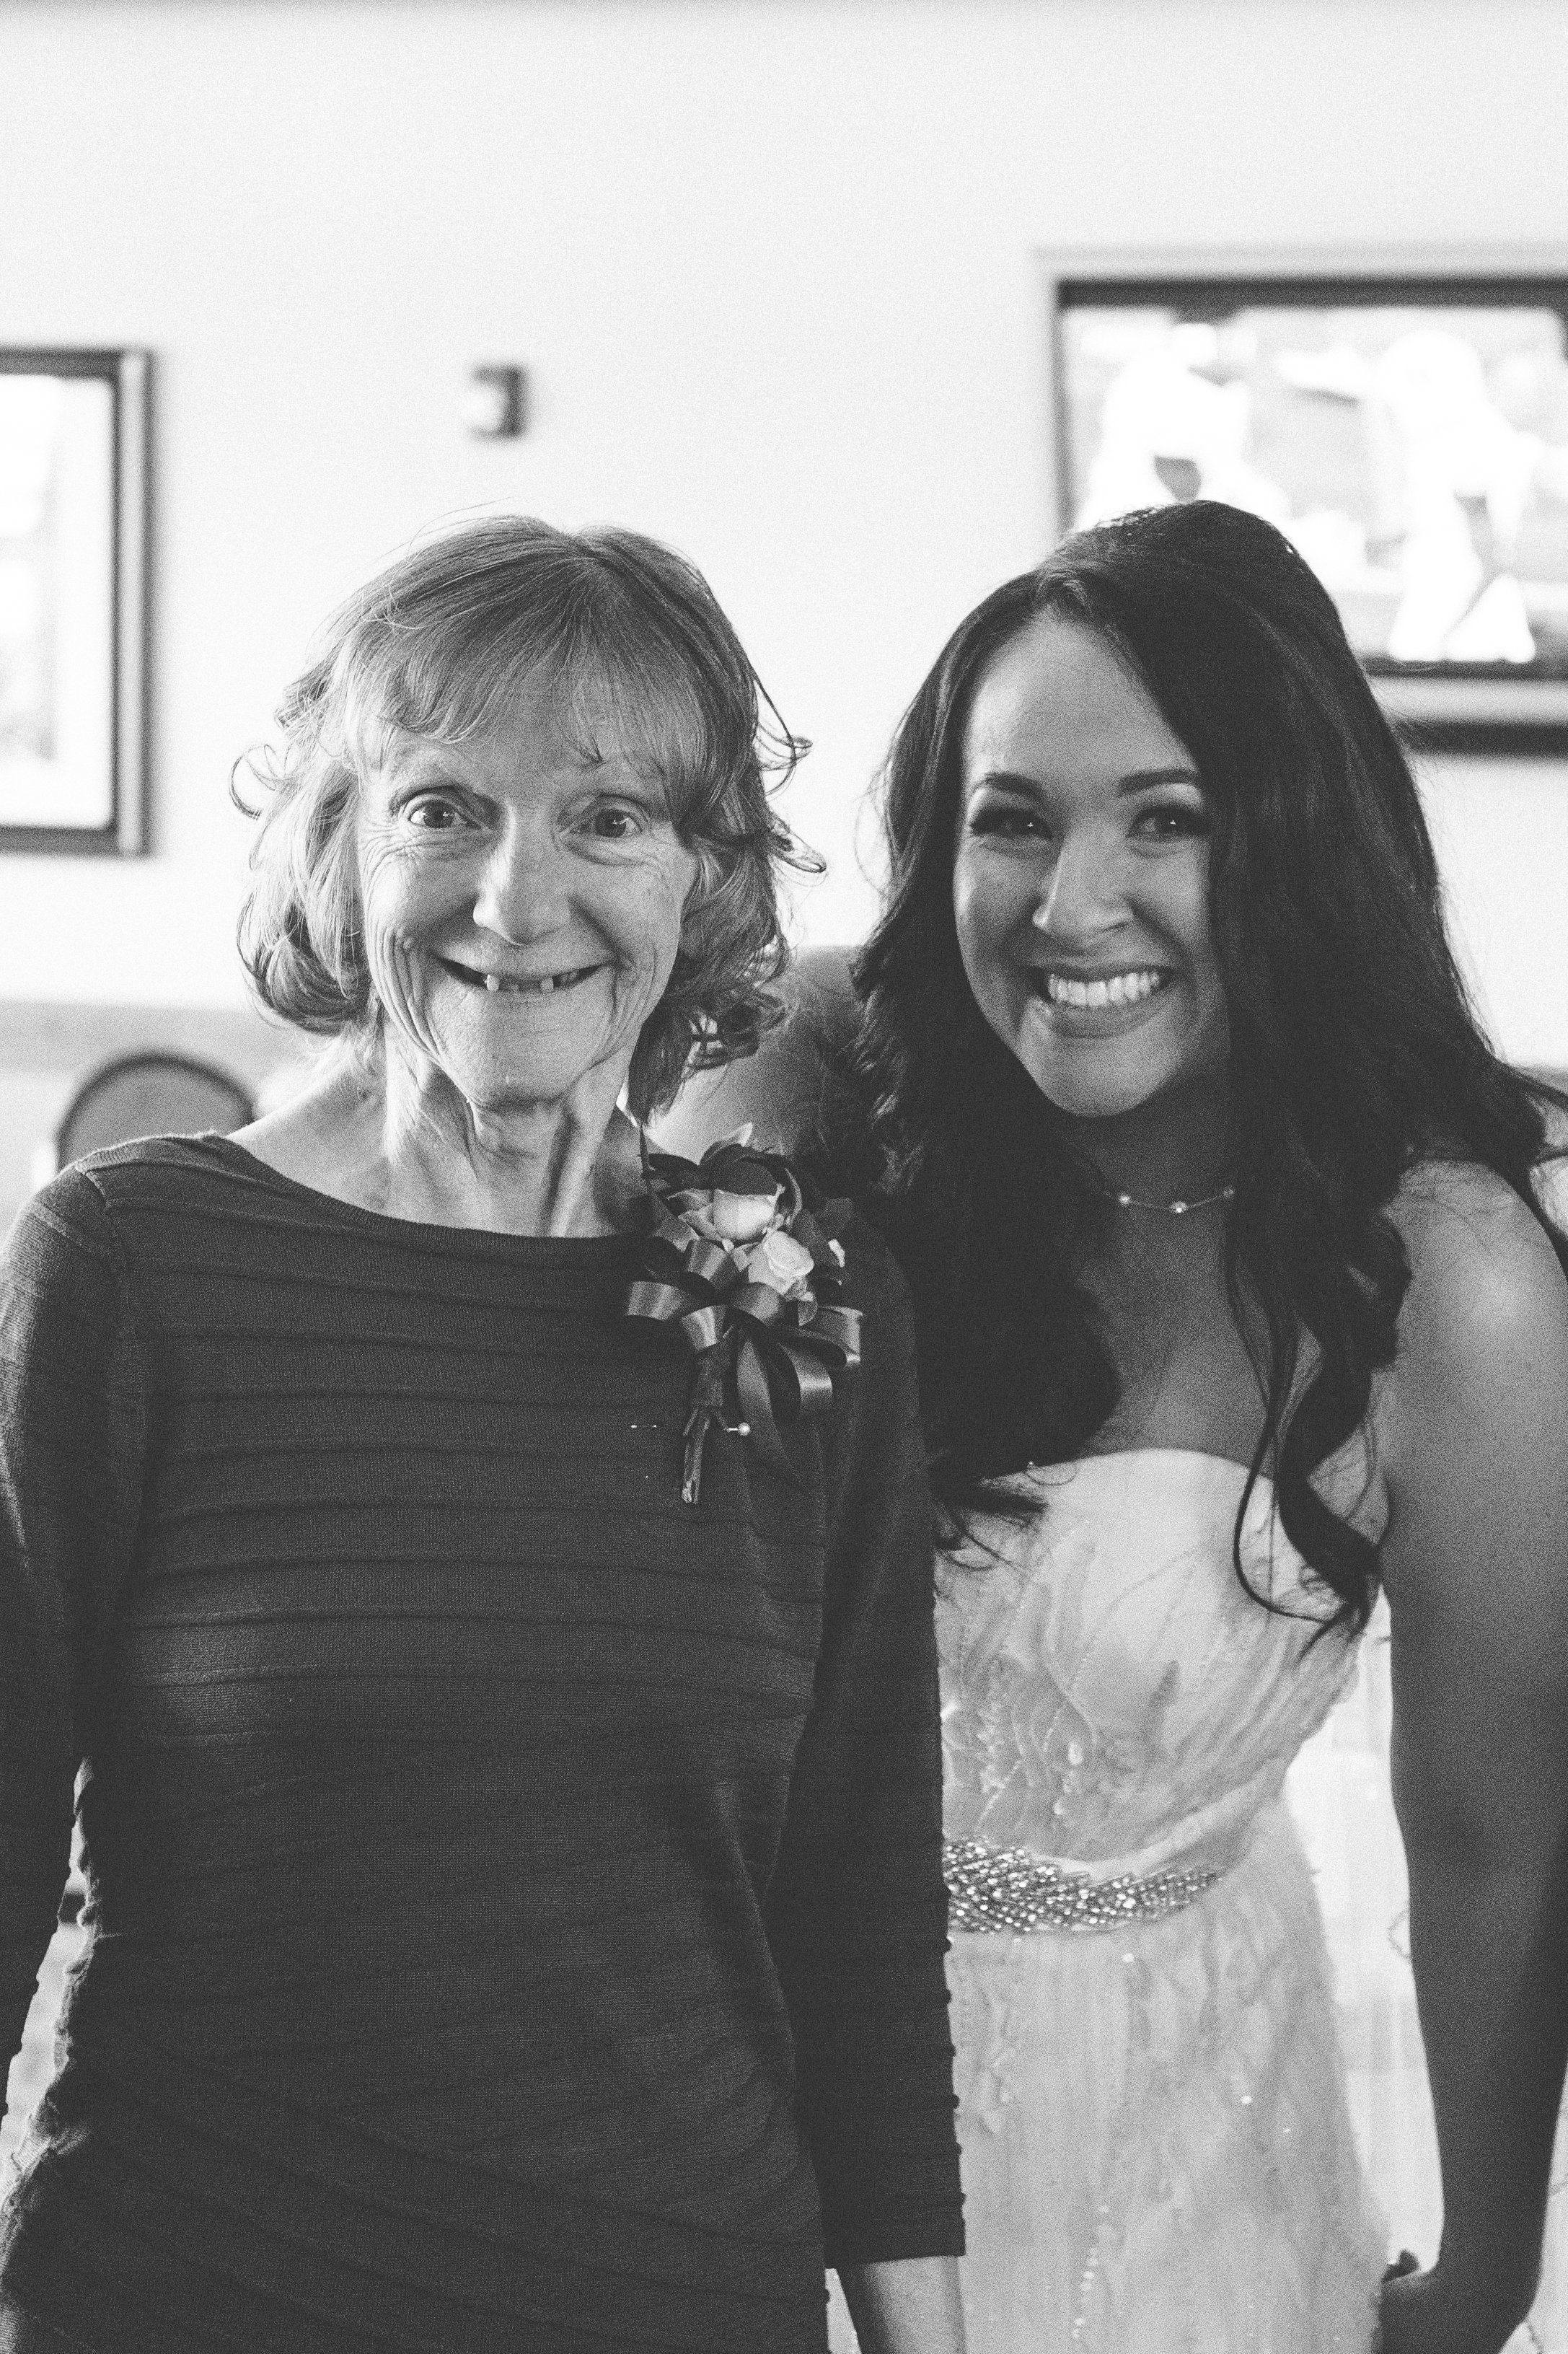 Julia Napolitano (right) poses with her mother, LInda, on her wedding day. Because Linda, 66, has advanced stages of Alzheimer's disease, attending the ceremony was not an option. So Napolitano and groom Justin Phillips held a special ceremony at the assisted living facility where her mother resides.